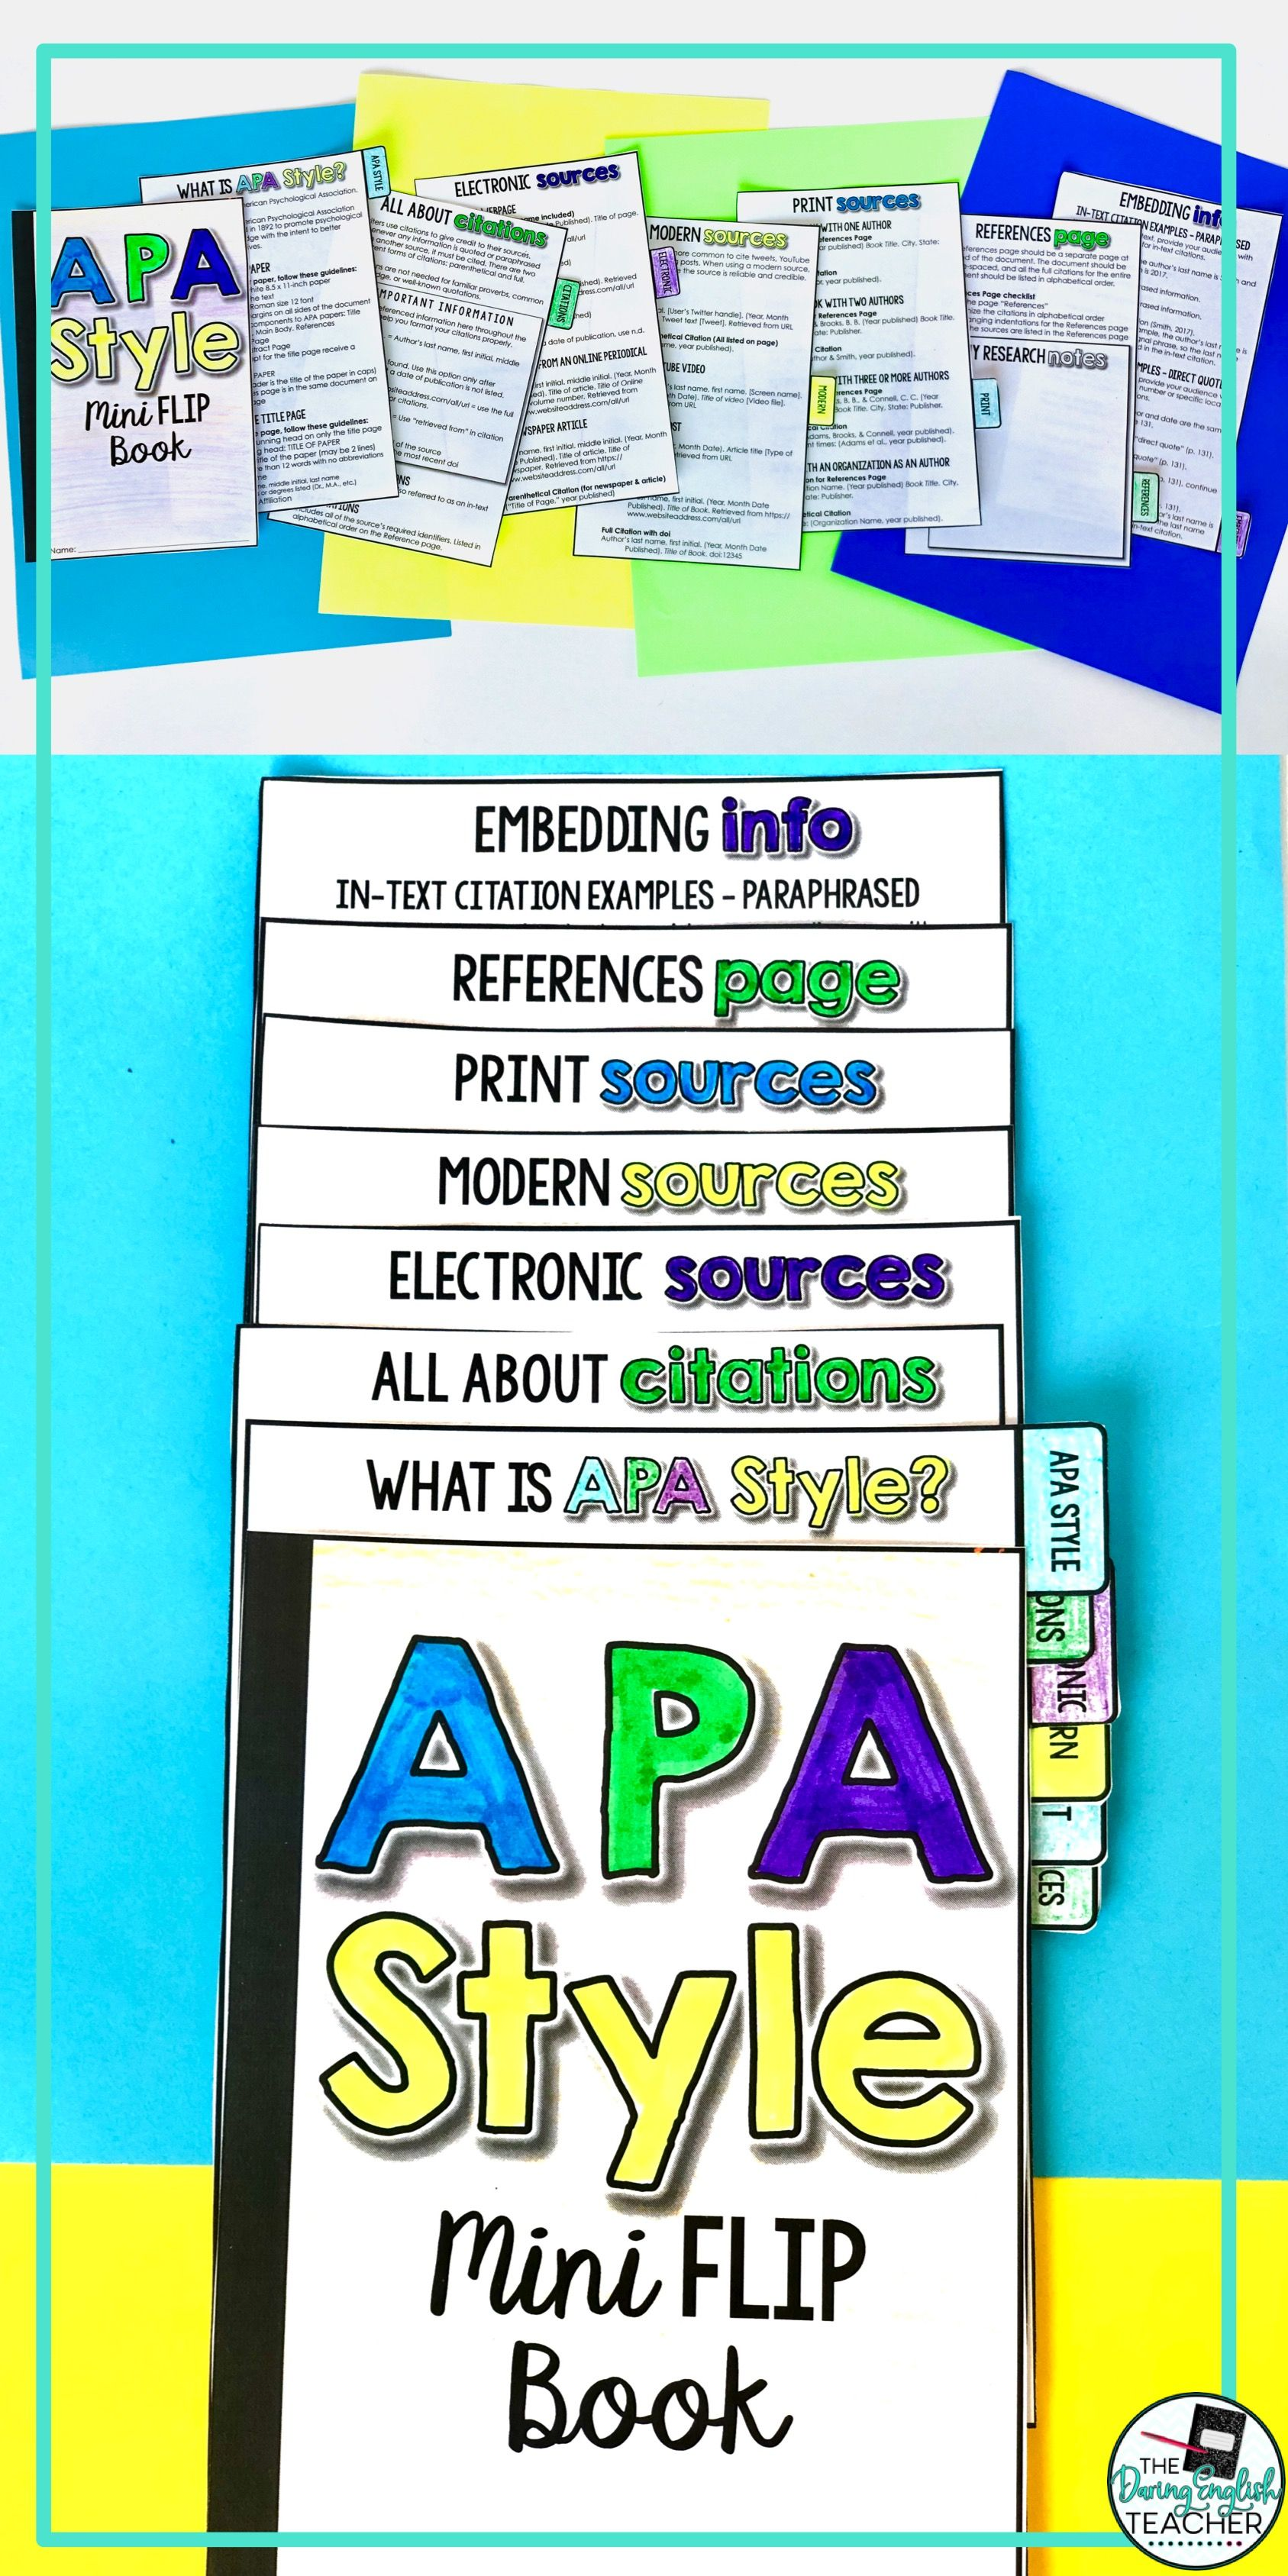 Apa Style 6th Edition Mini Flip Book How To In Text Cite A Website With No Author Or Date